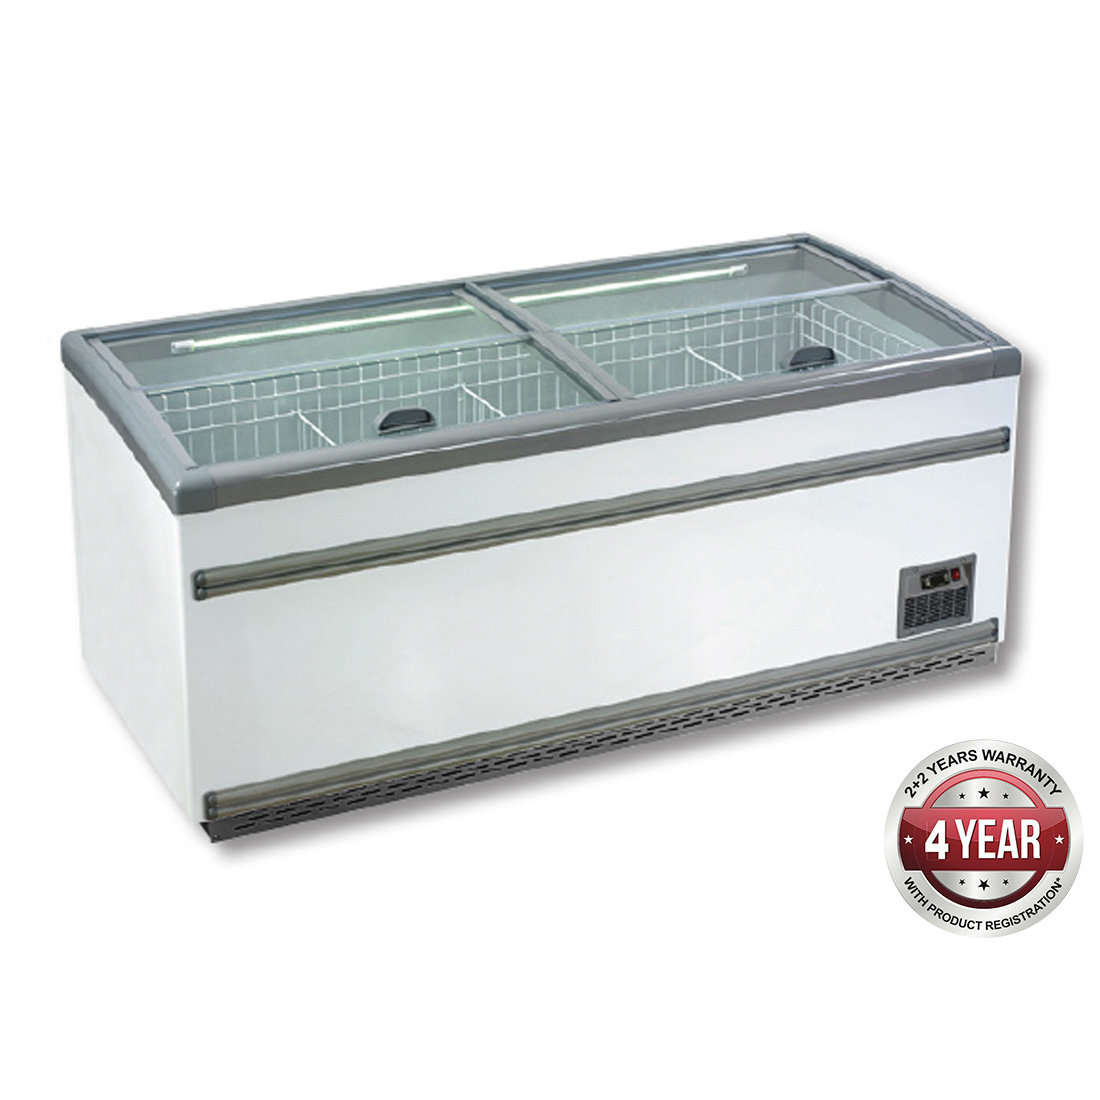 ZCD-L210S Supermarket Island Dual Temperature Freezer & Chiller‌ with Glass Sliding Lids